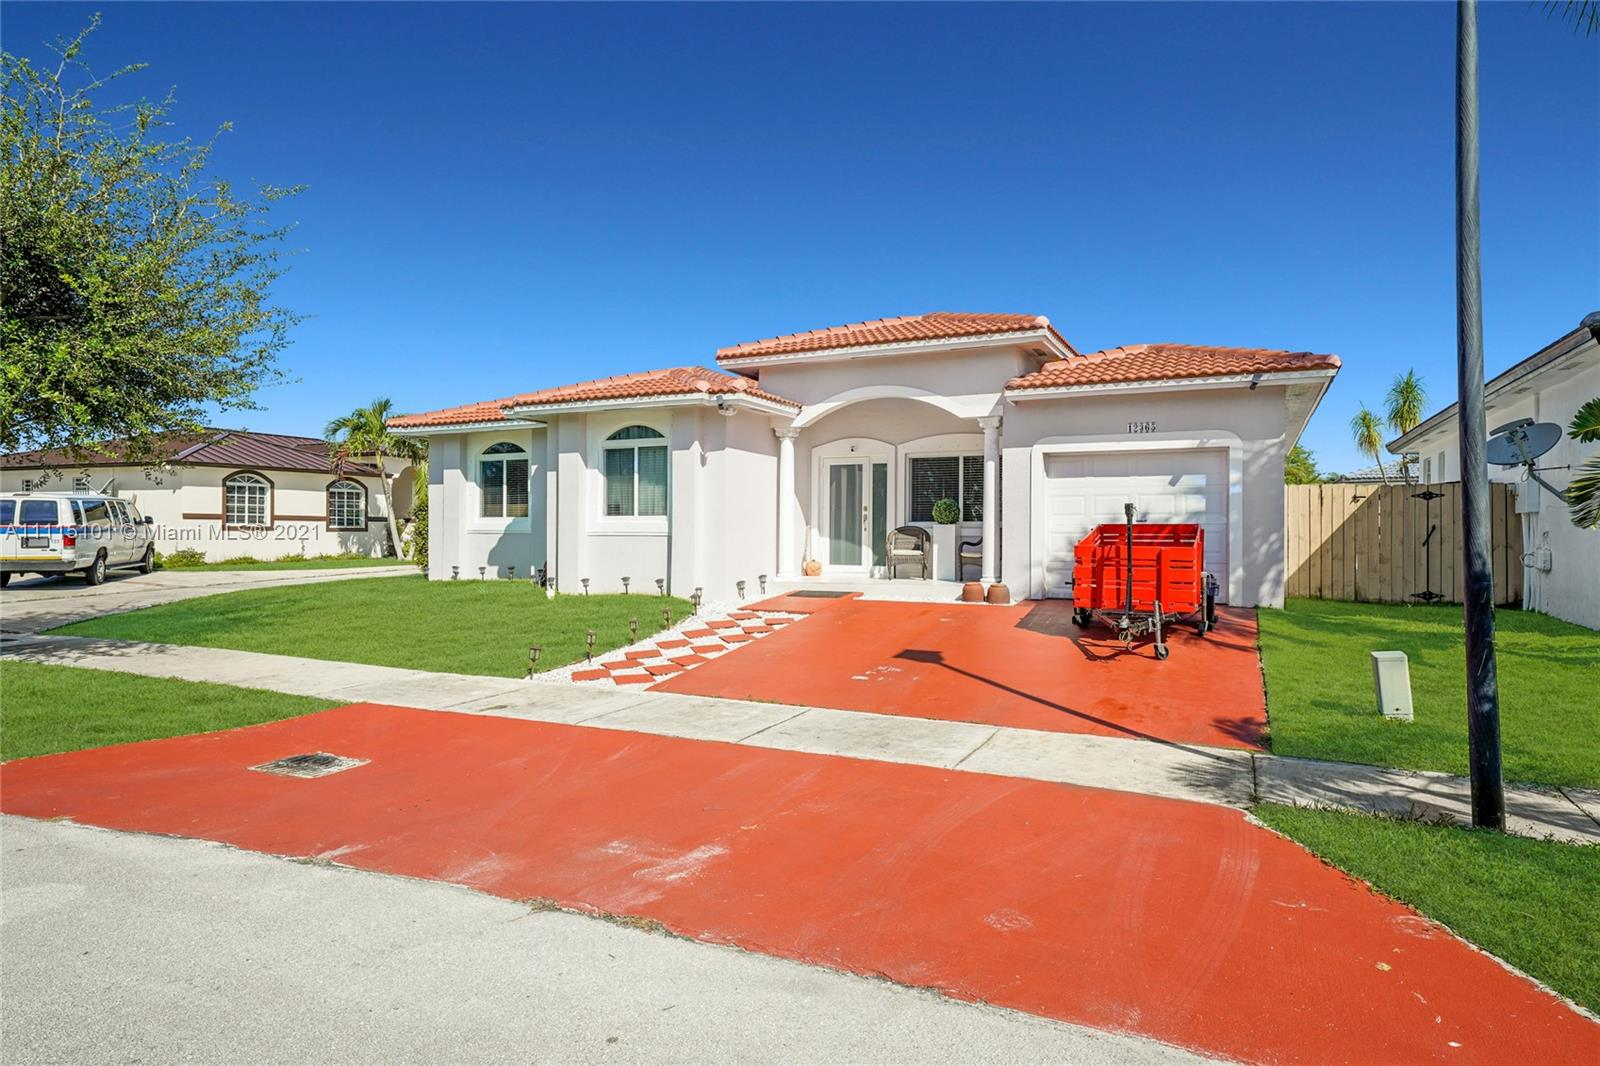 Single Family Home For Sale JESSLYN SUBDIVISION1,556 Sqft